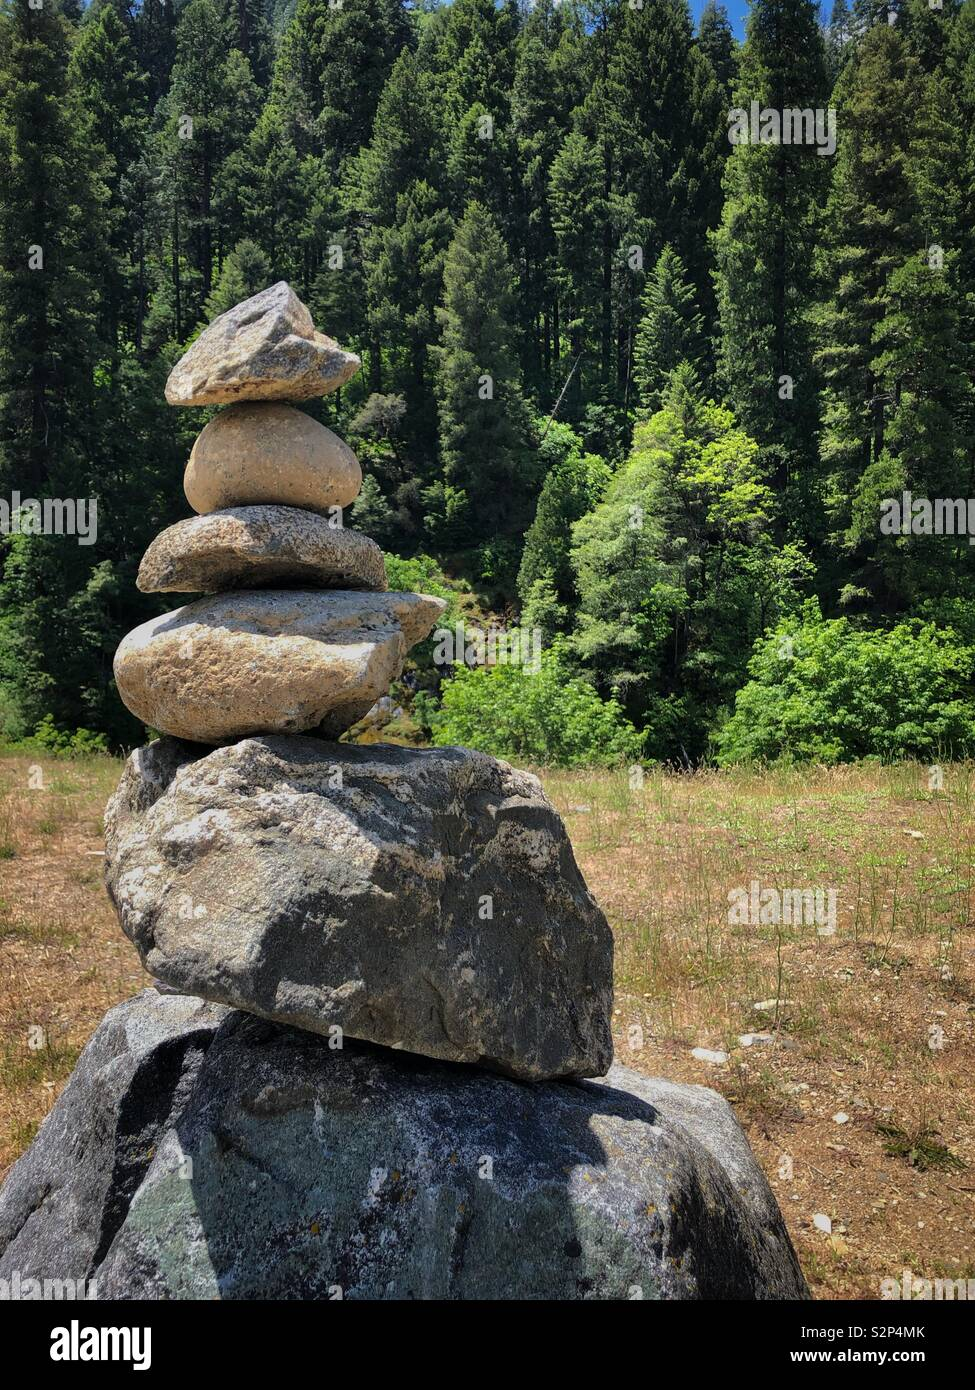 Standing rocks near the American River on Highway 50 in California. Stock Photo